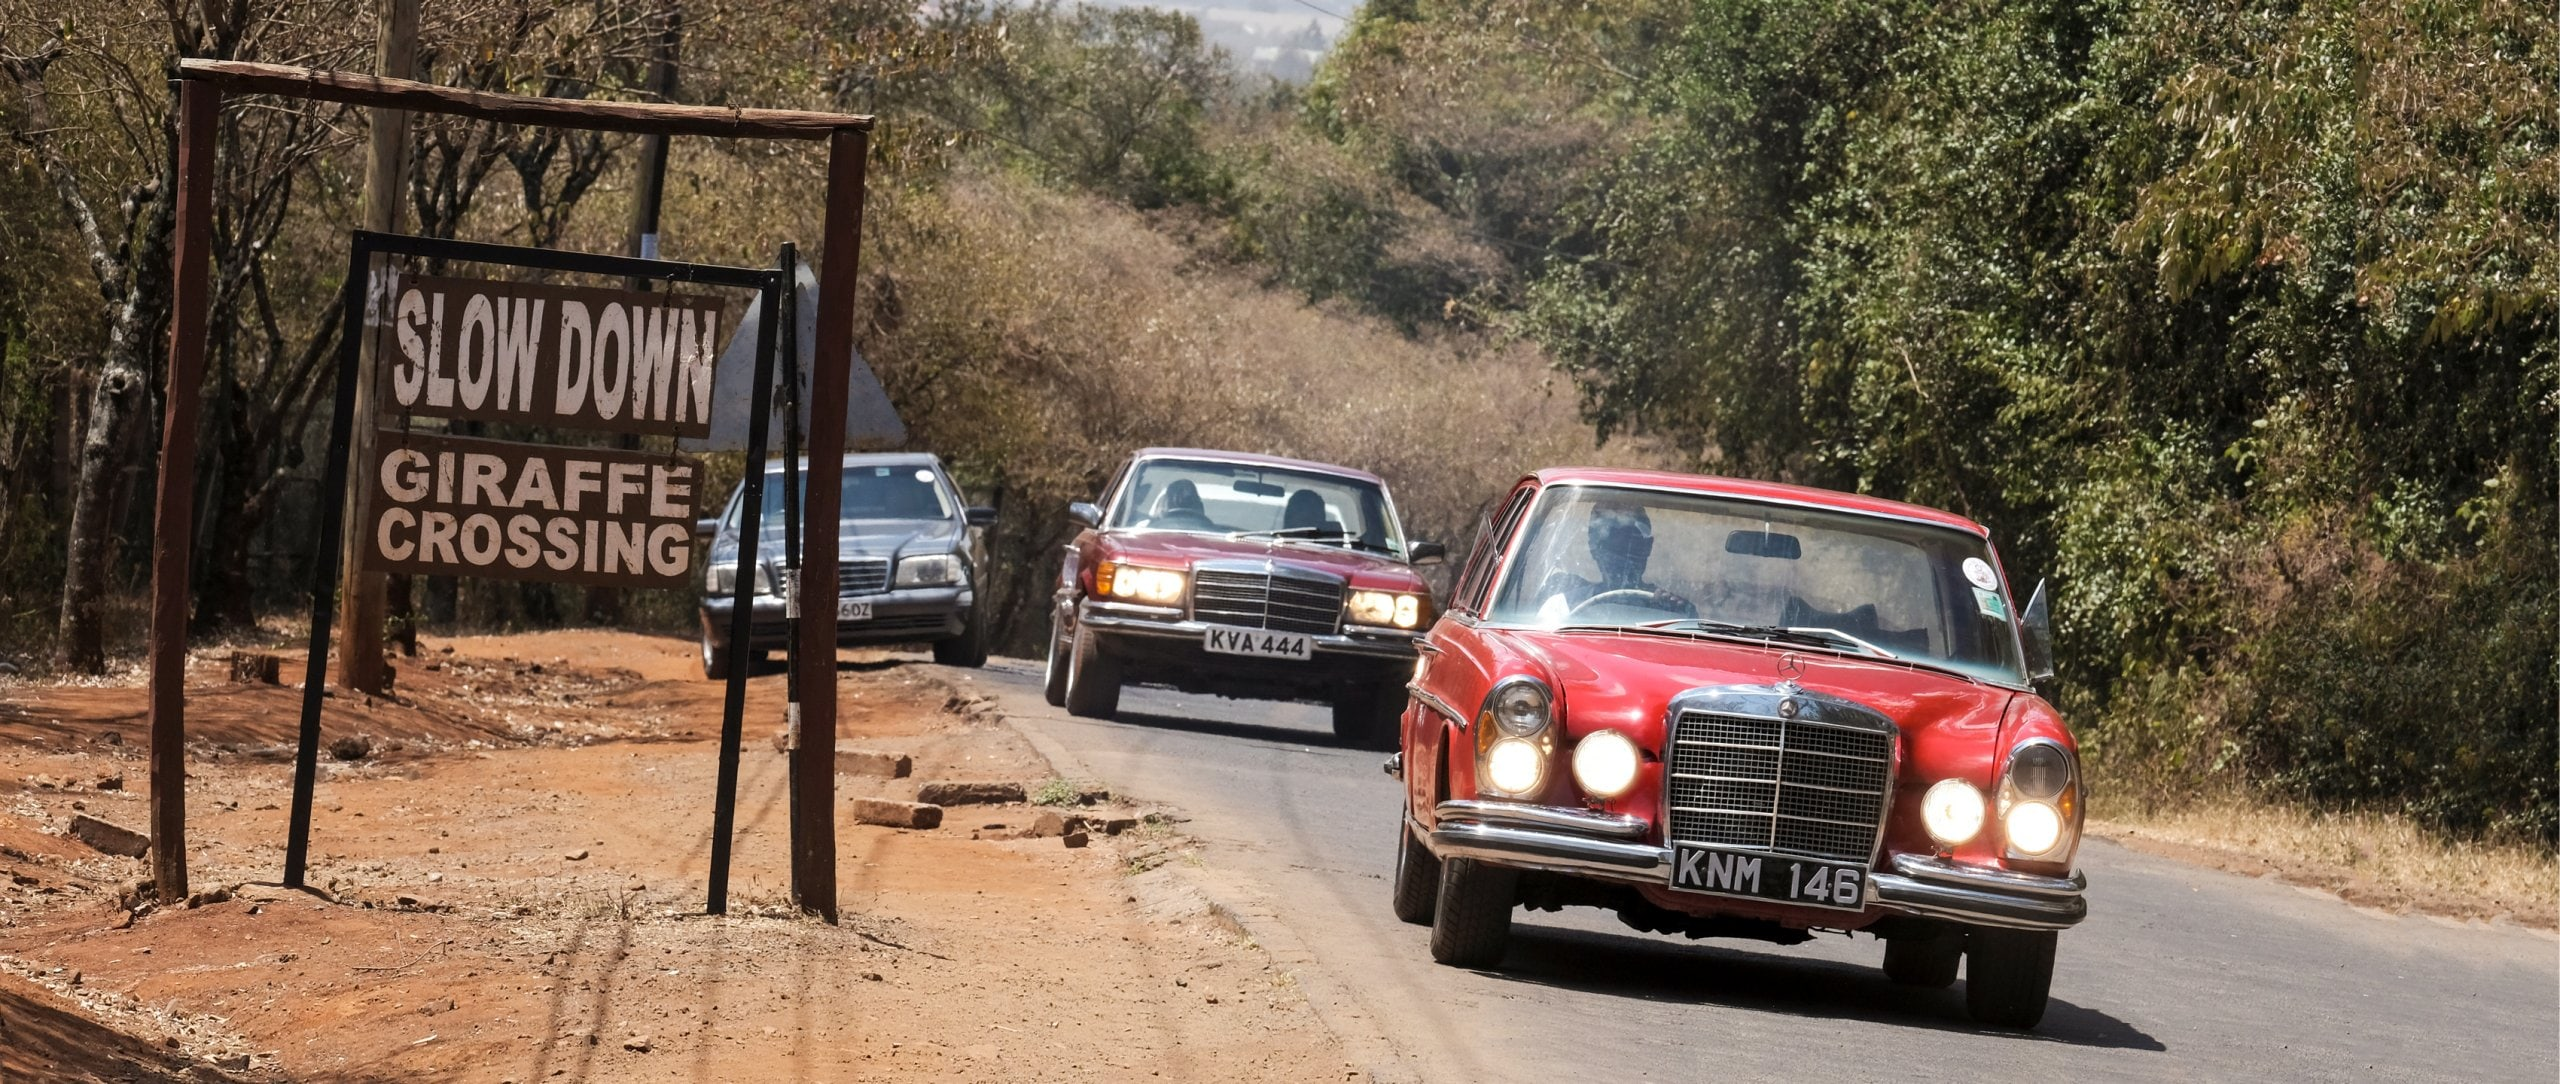 Two times S: a W 108 followed by Hermann Mike's W 116 on the way to the giraffe farm.